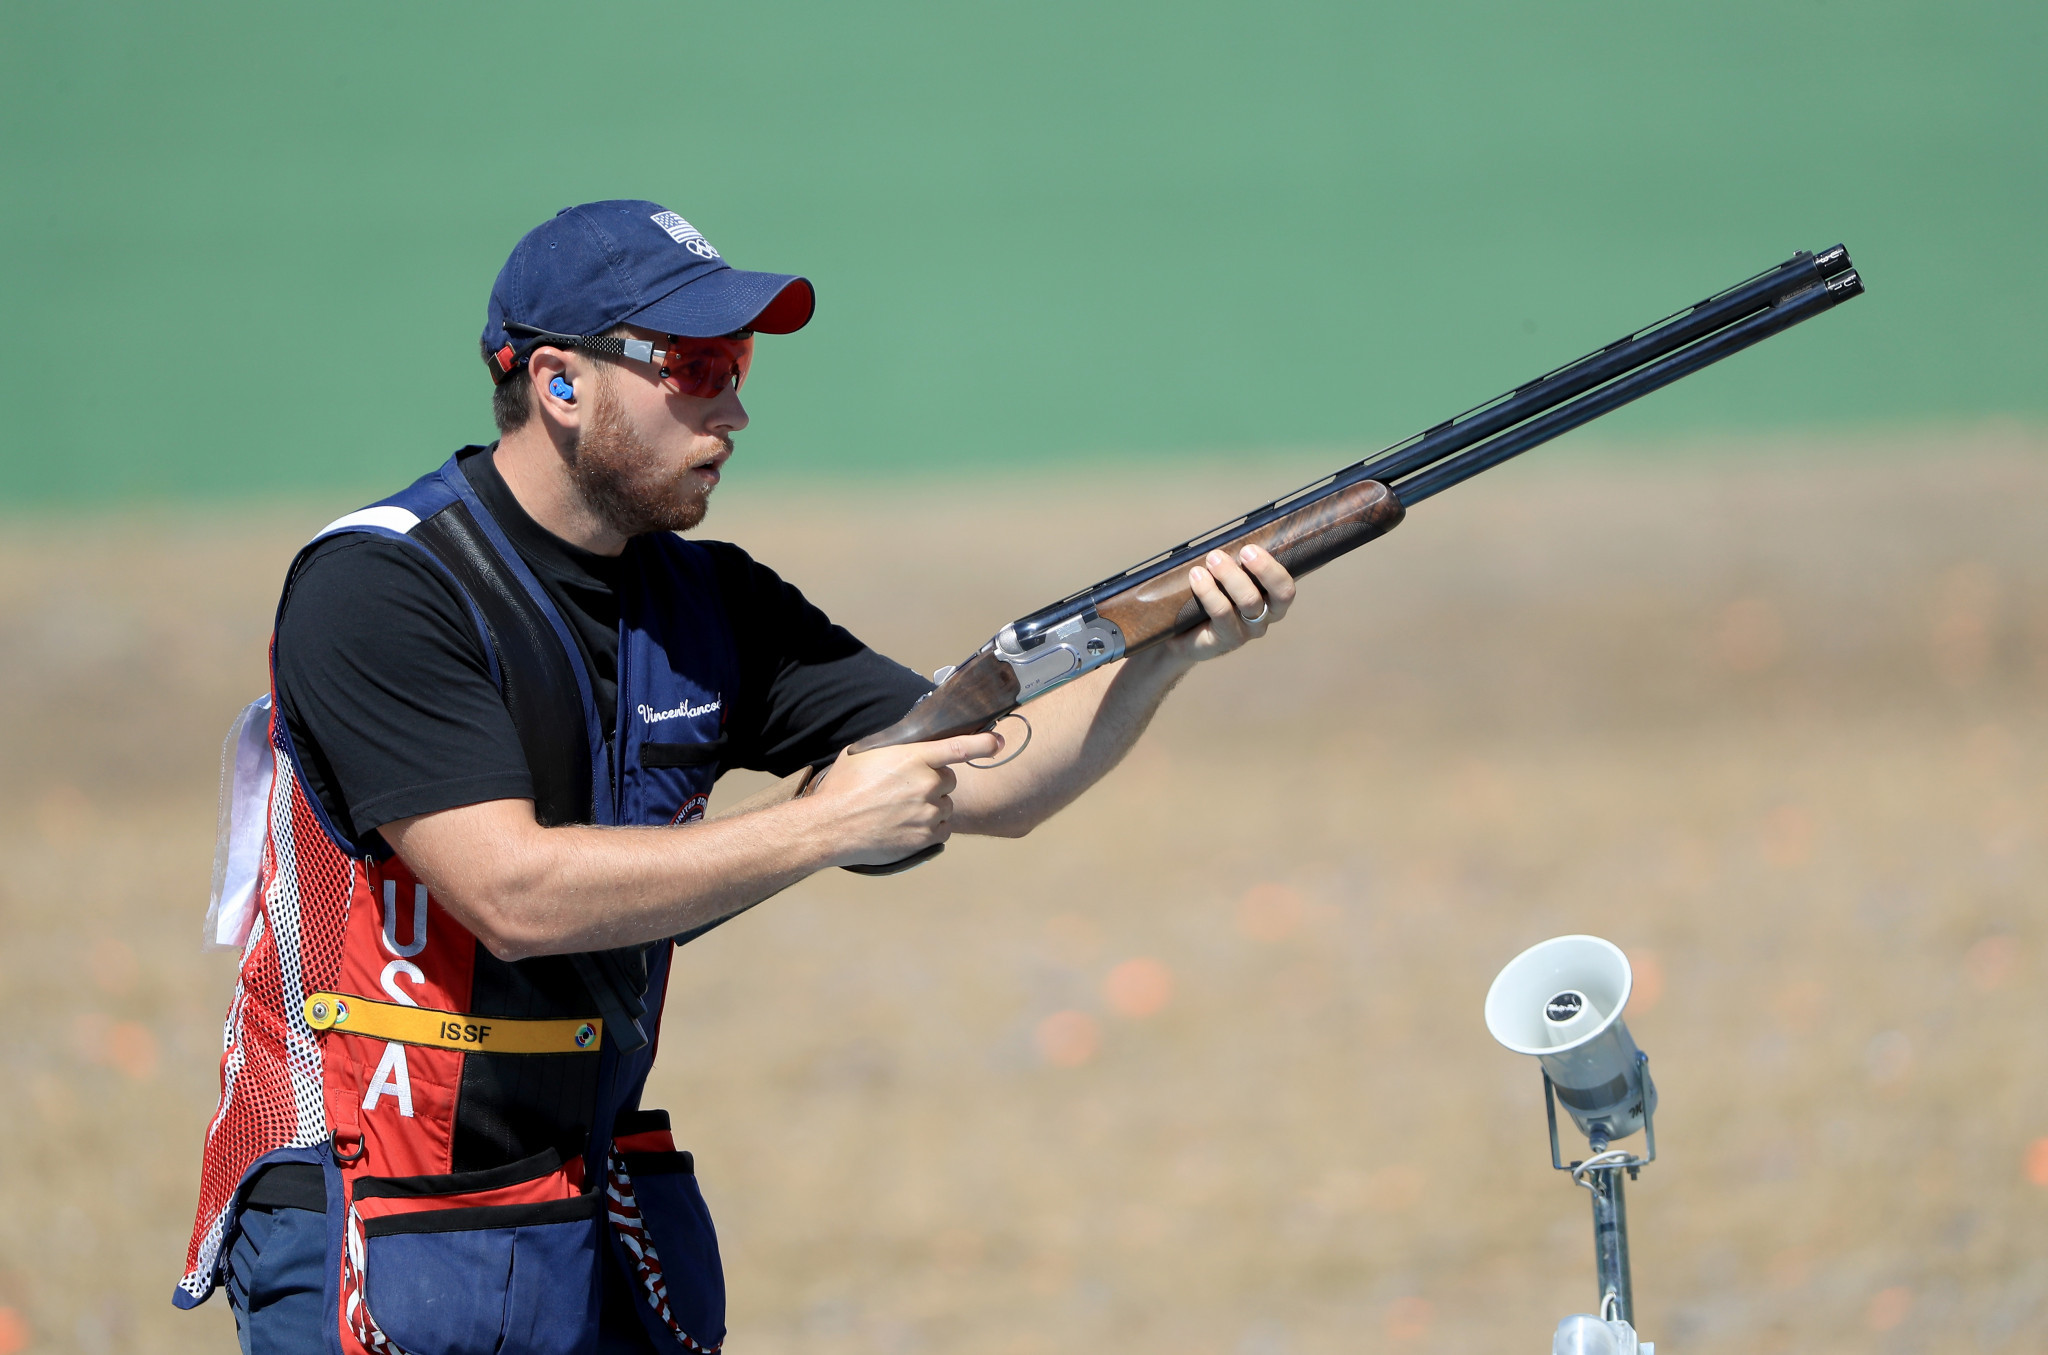 Vincent Hancock completed a US double in skeet event at the ISSF Shotgun World Cup in South Korea ©Getty Images